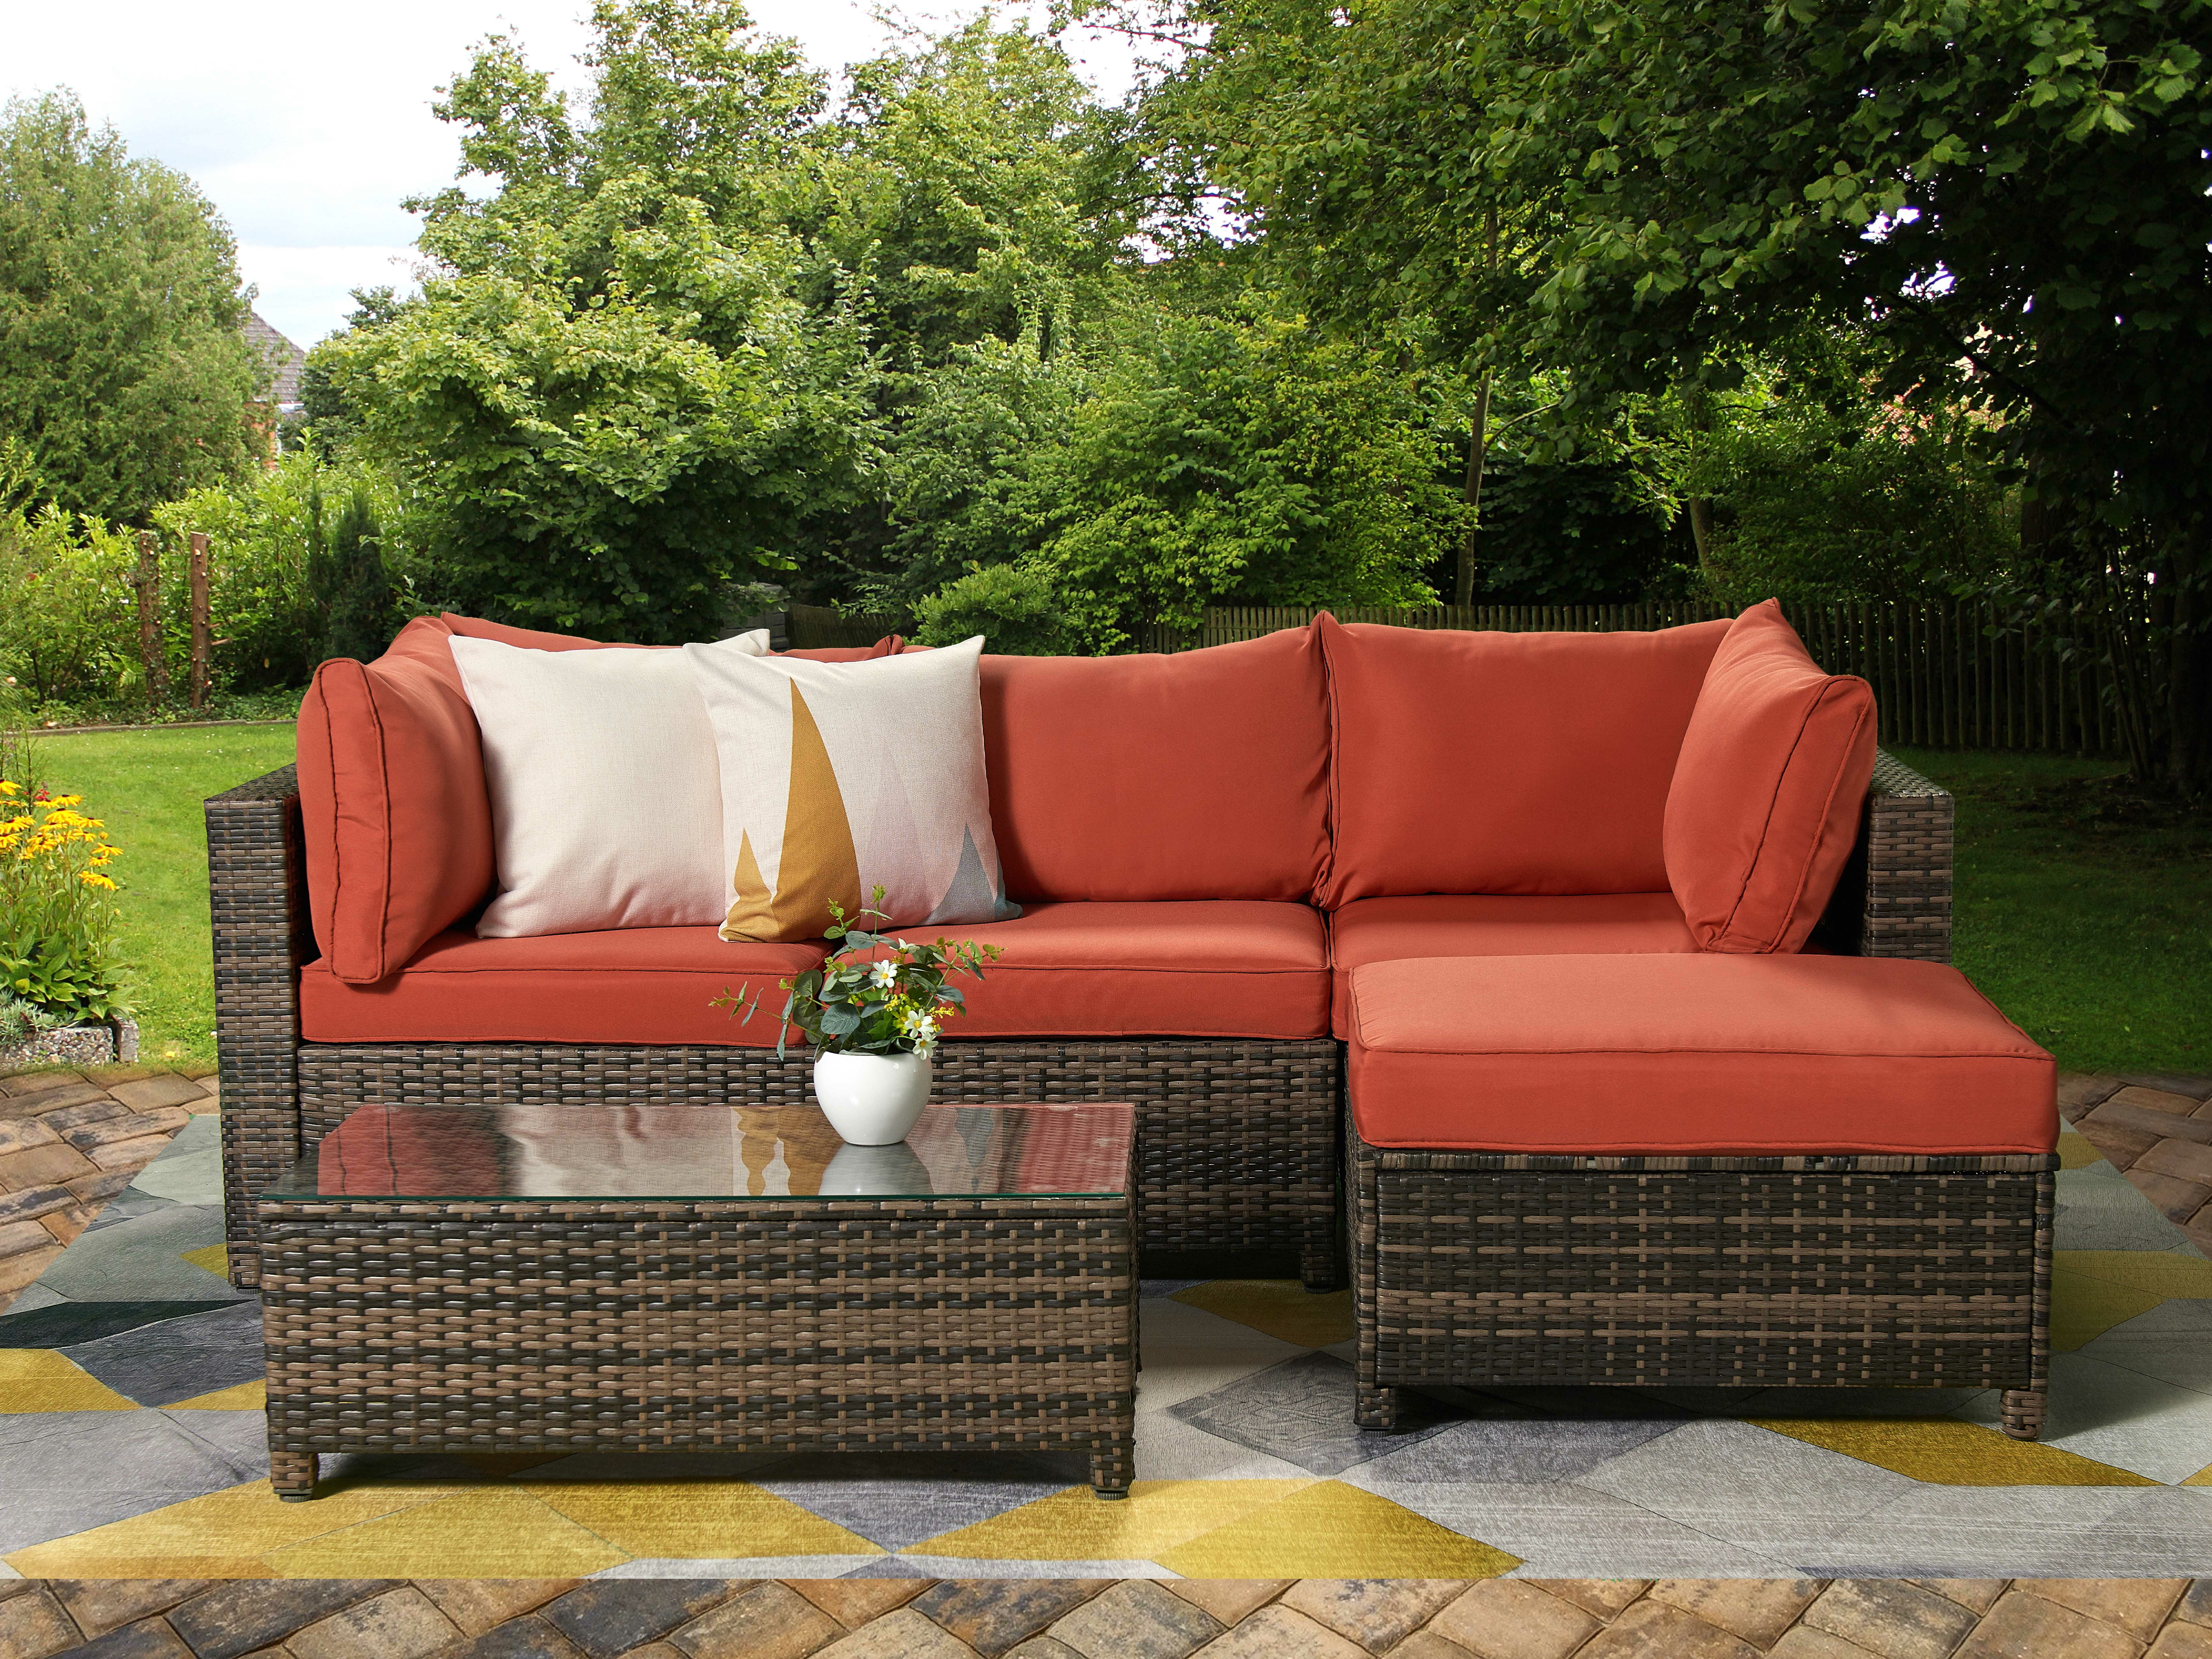 Purington Circular Patio Sectionals With Cushions Inside Famous Roni Patio Sectional With Cushions (View 7 of 20)